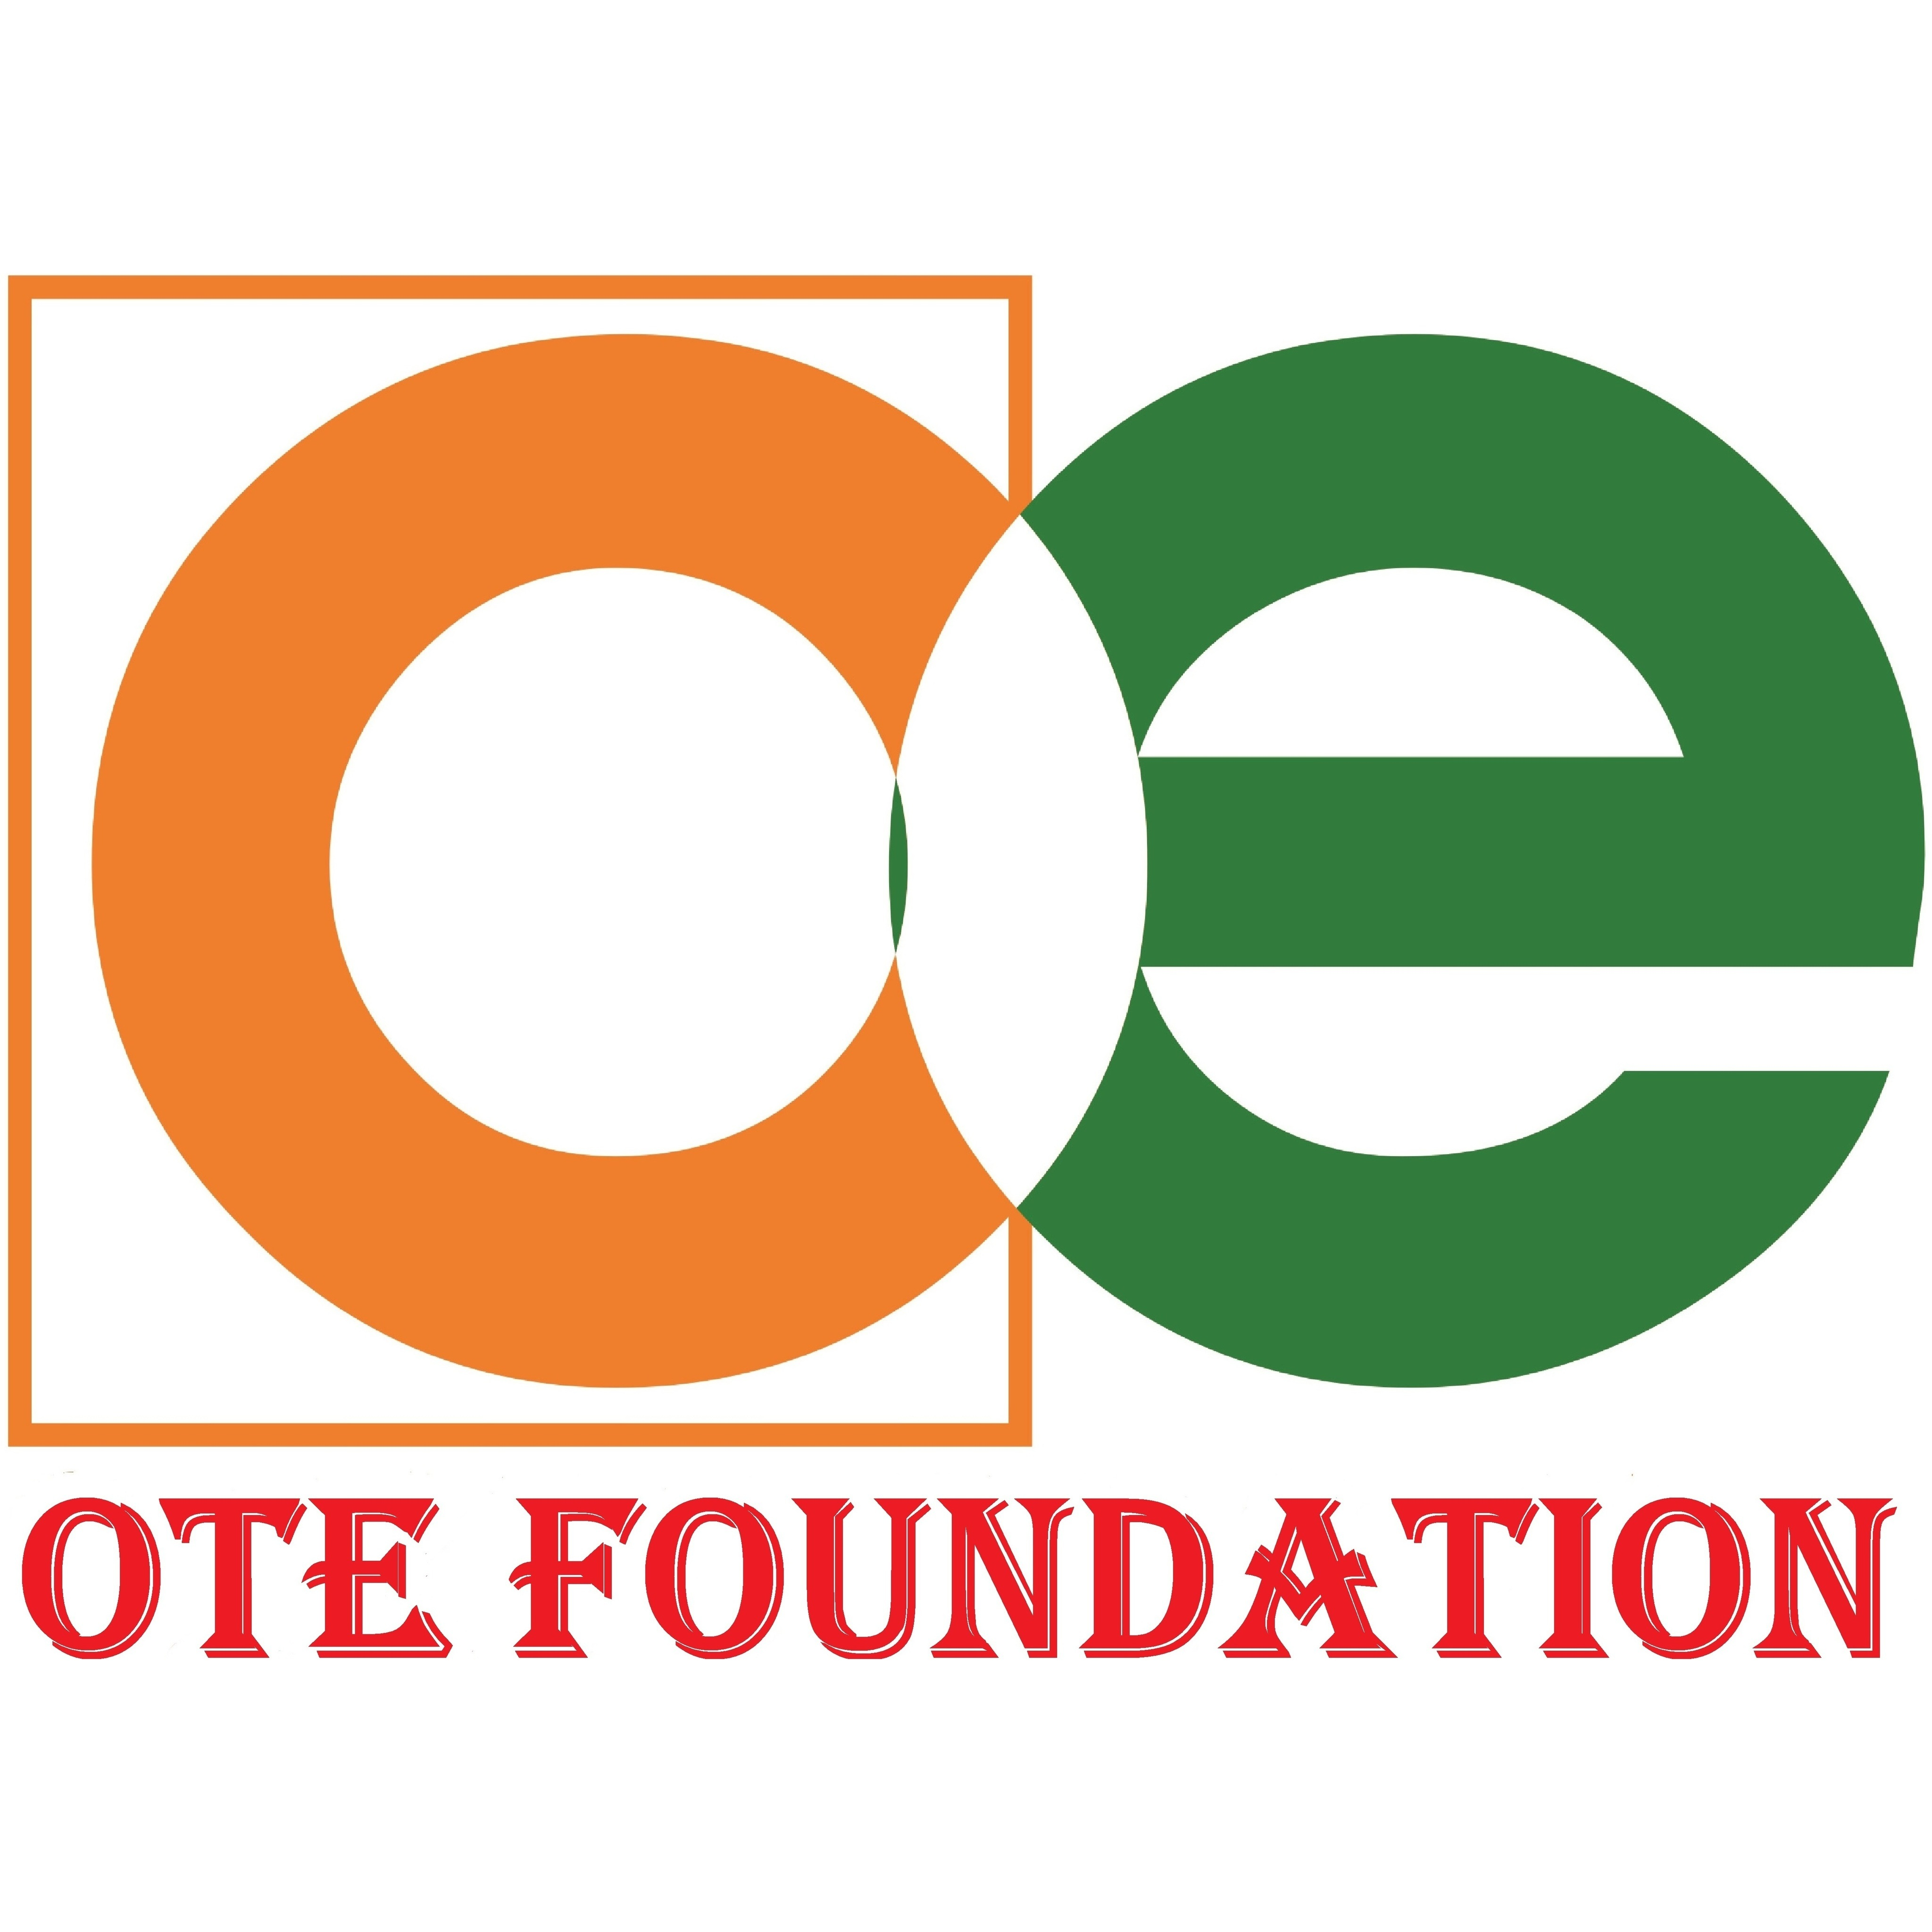 Opportunity Two Excel Foundation: Donate To Our